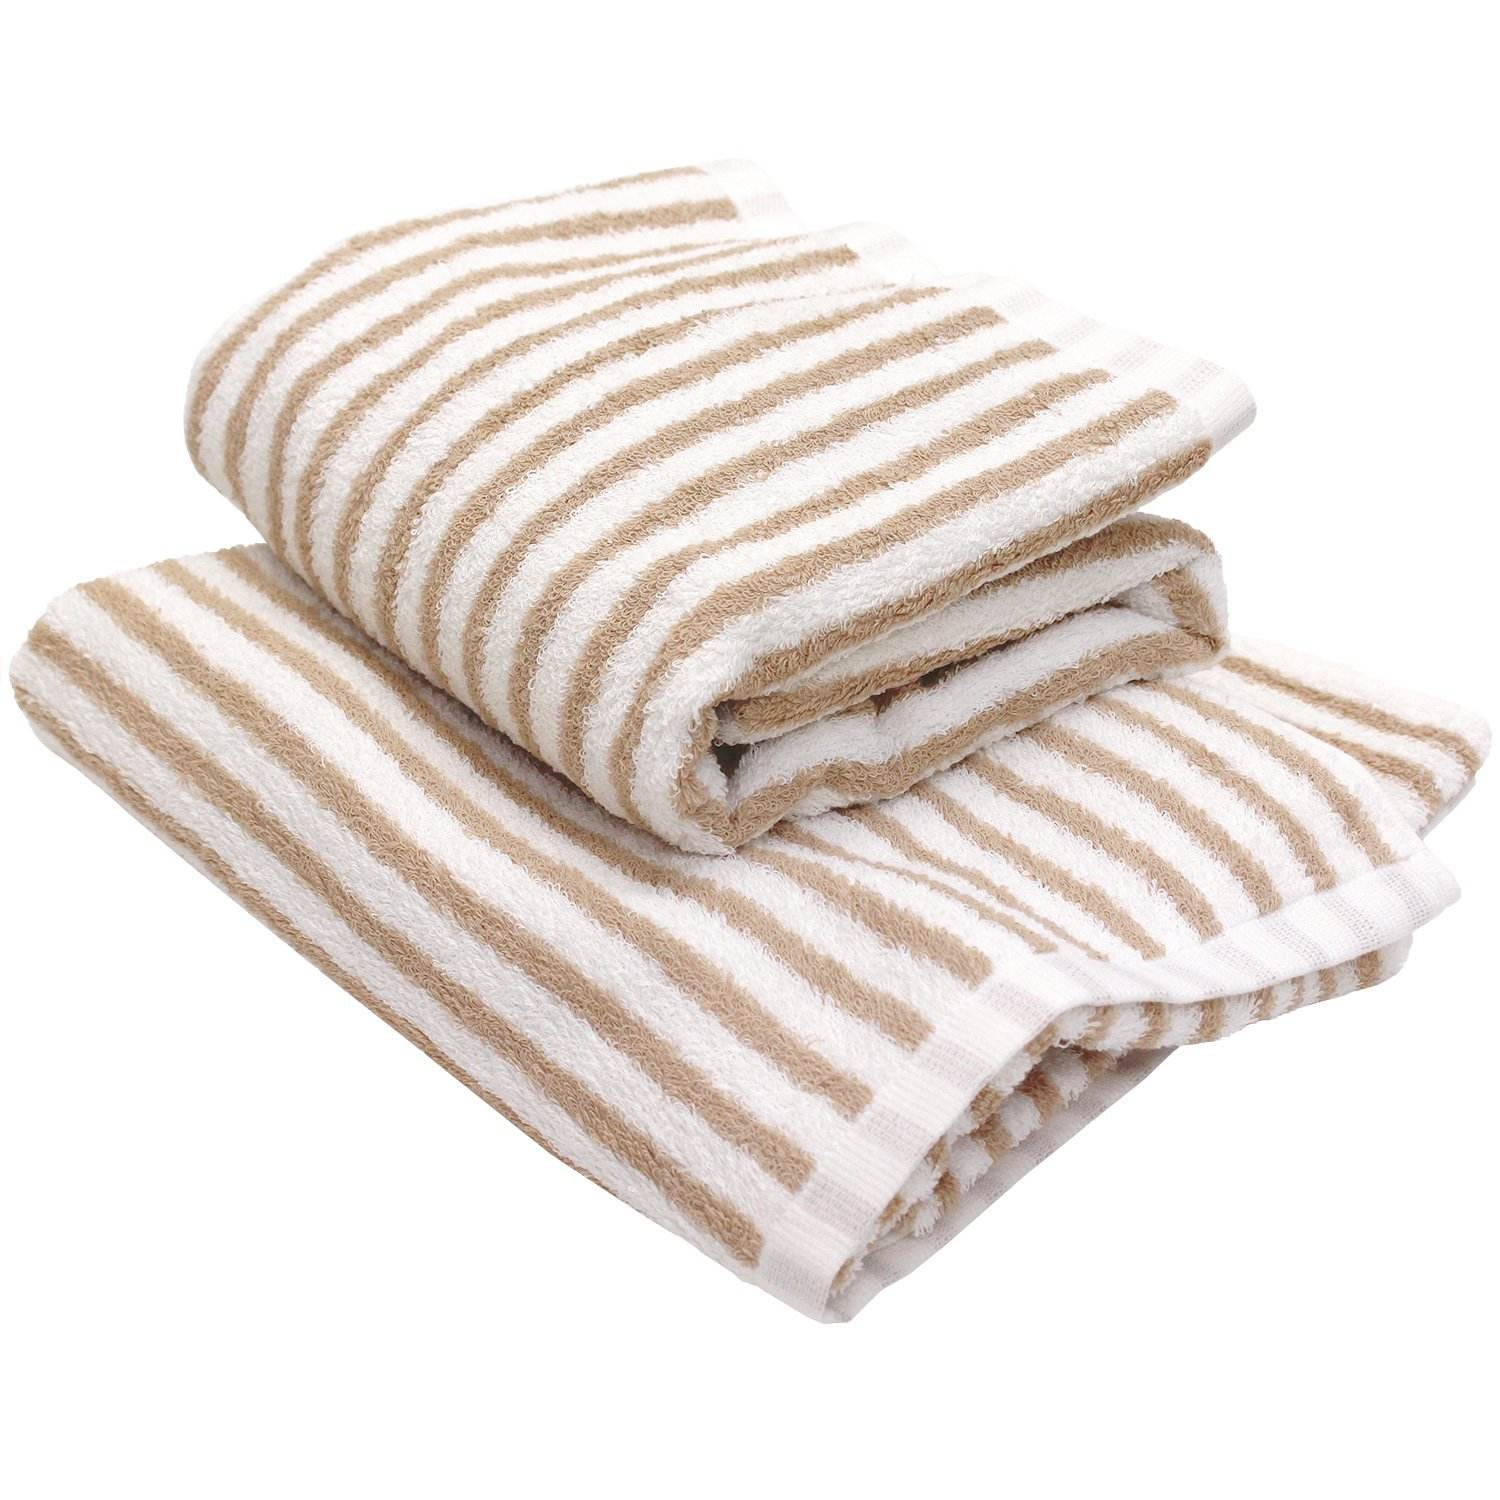 Osaka Sensyu towel Hotel Style Towel stripe design thin stripe made in Japan 100% cotton Bath towel moca light brown